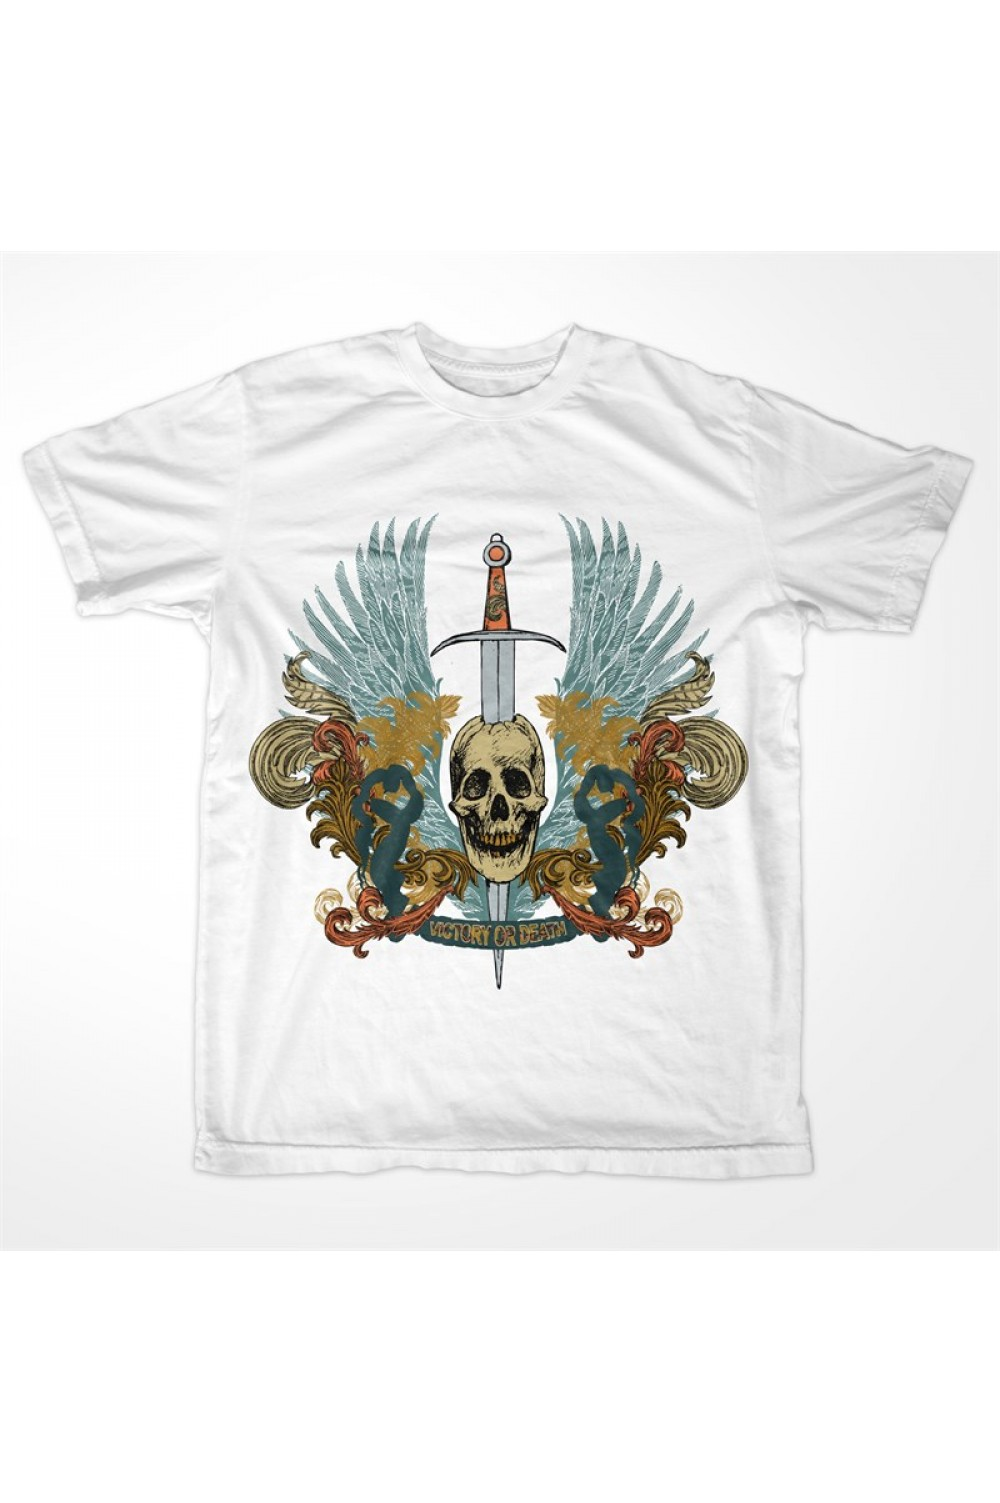 "Skull Pirate Men Printed Tshirt 4013 ""Victory or Death"""